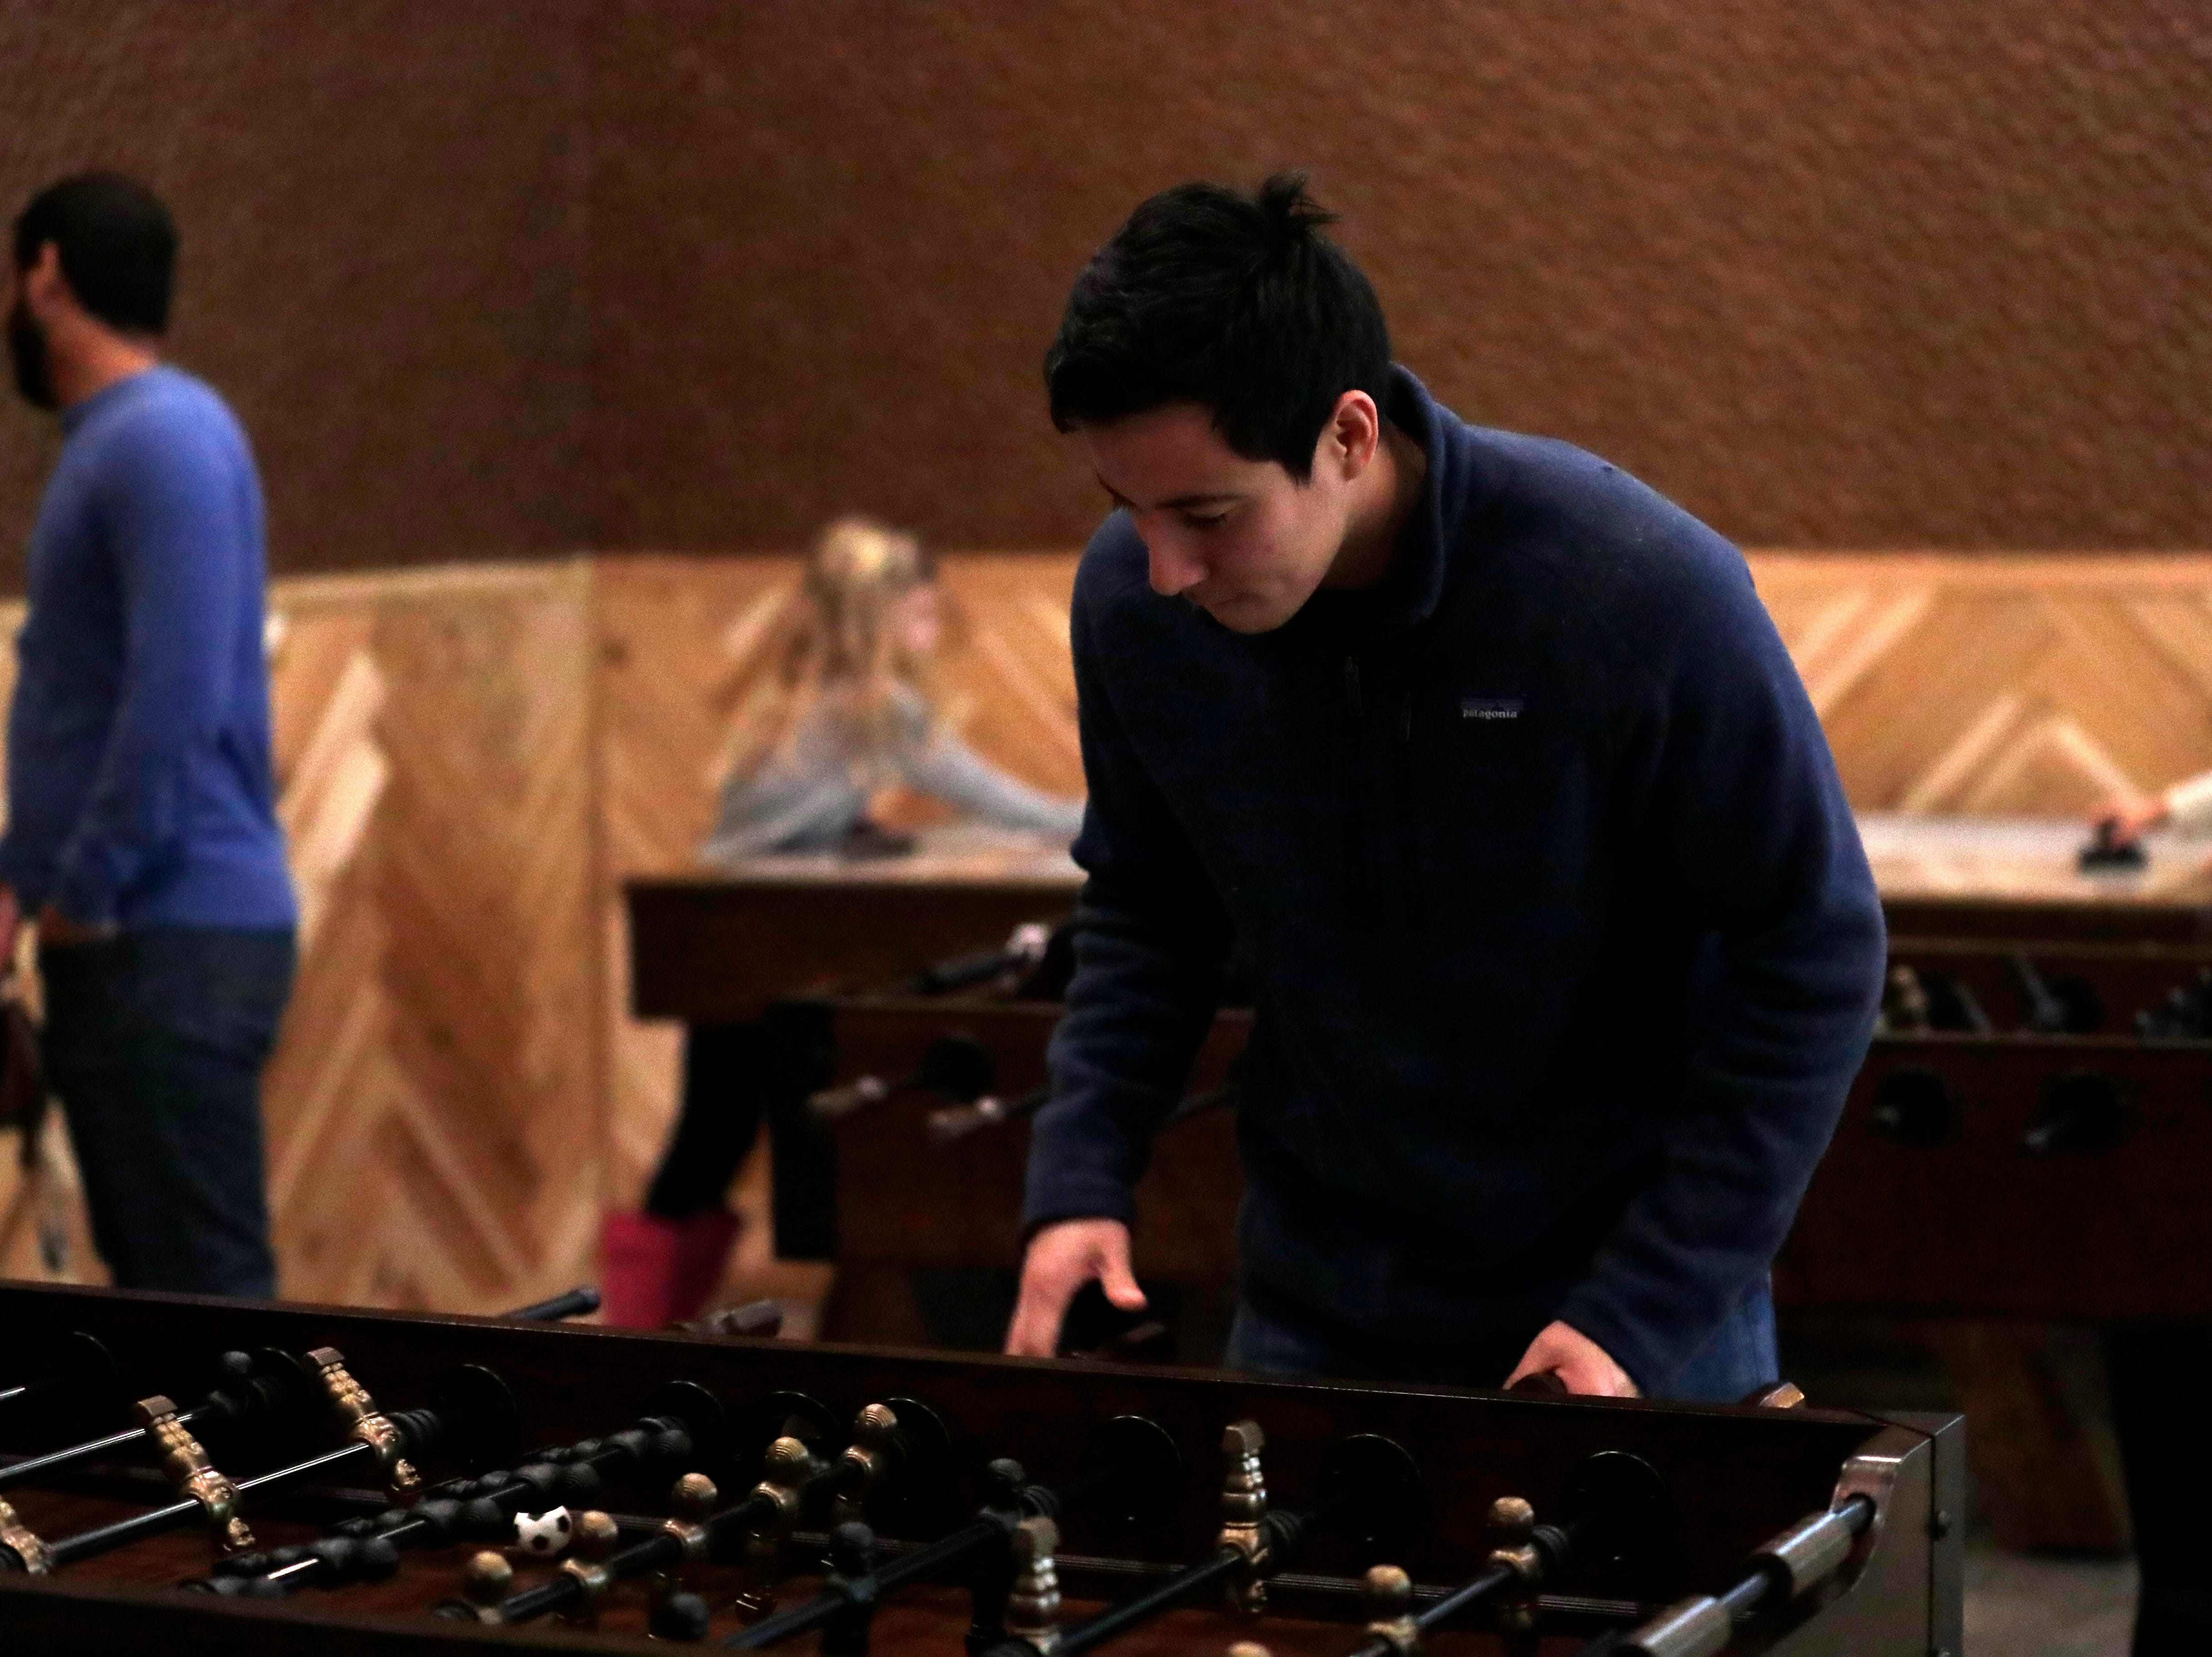 Fernando Quiroz plays his friend in foosball at the soft opening of the new Proof Brewery, Friday, Feb. 1, 2019.